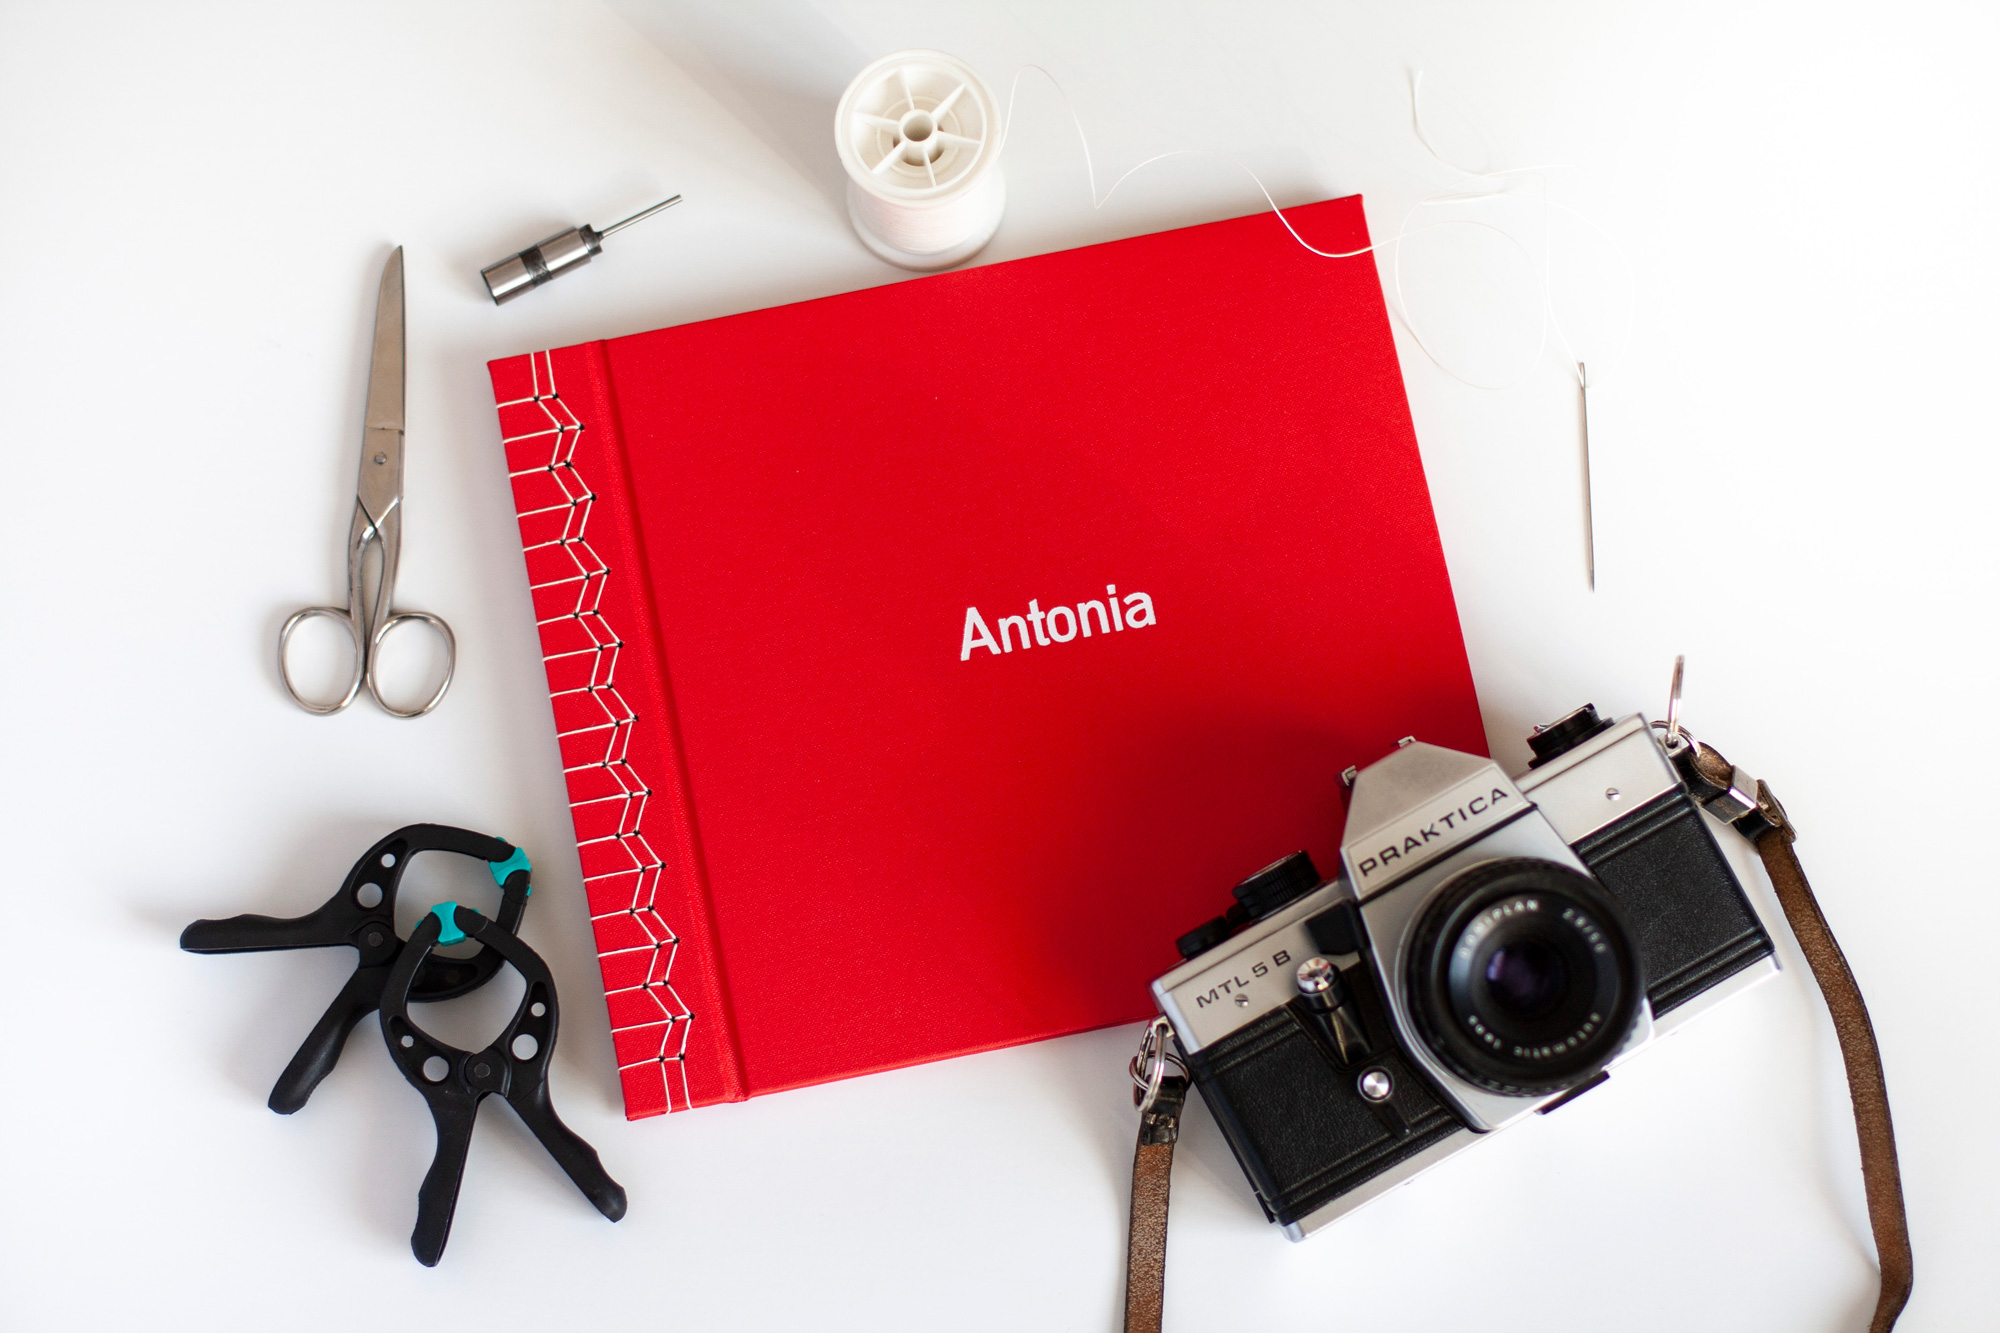 """Red Book With White Japanese Stab Stitch Binding And White Hotfoil Stamp In Center """"Antonia"""", Flatlay On White Background With Bookbinding Props And Analog Camera"""